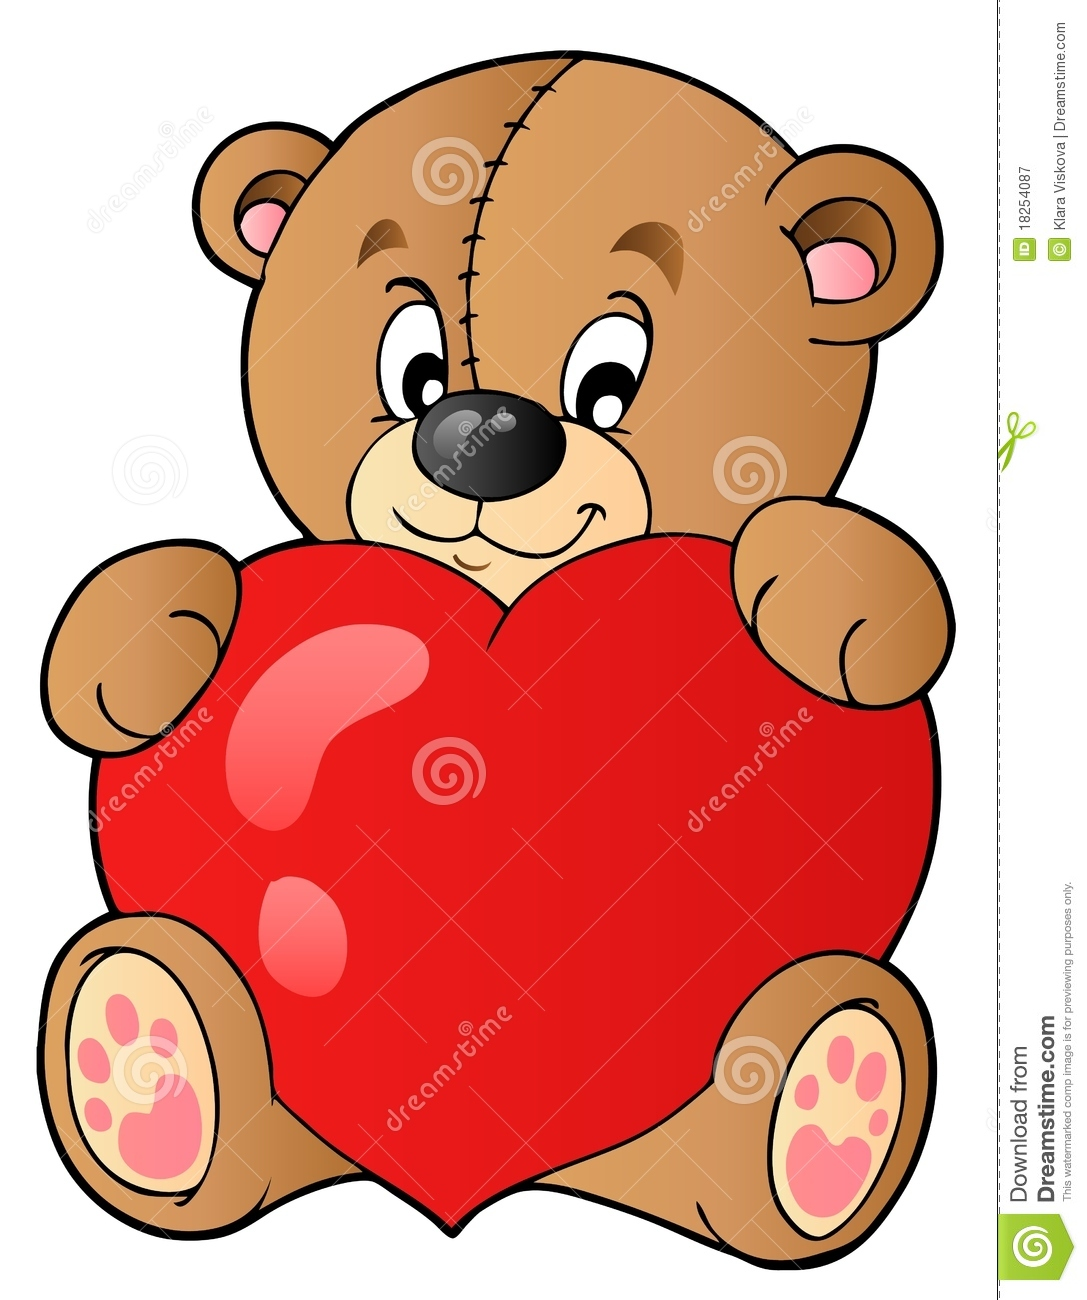 Cute Teddy Bear Holding Heart Royalty Free Stock Photography - Image ...